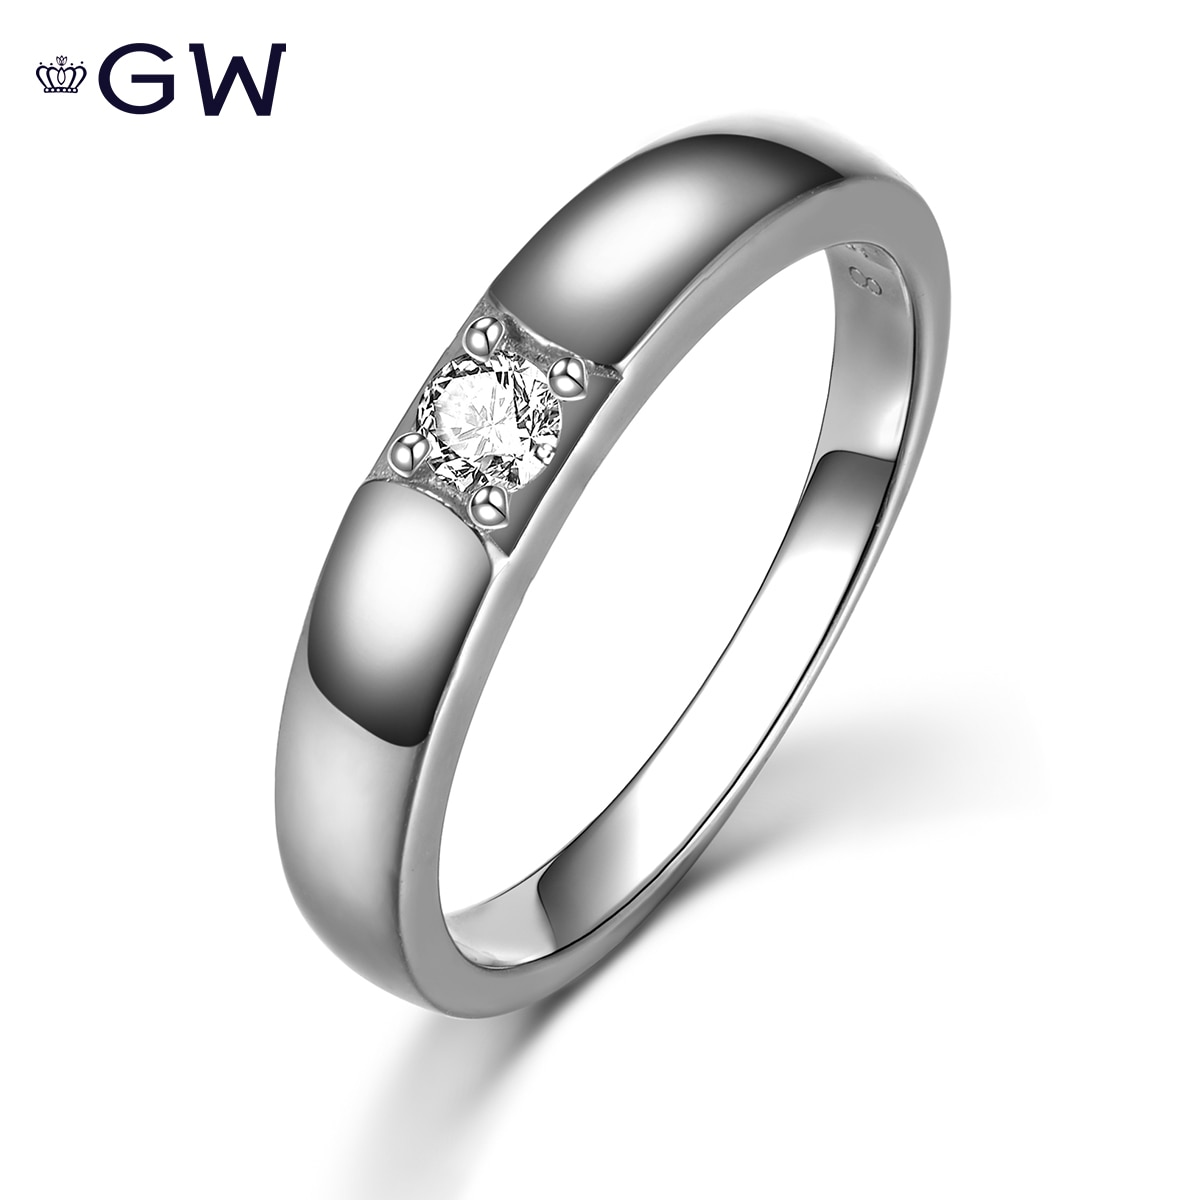 Men Women Ring Classic s925 Sterling Silver Engagement Wedding Bands Rings Couple Lovers' Ring Minimalism Fine Jewelry